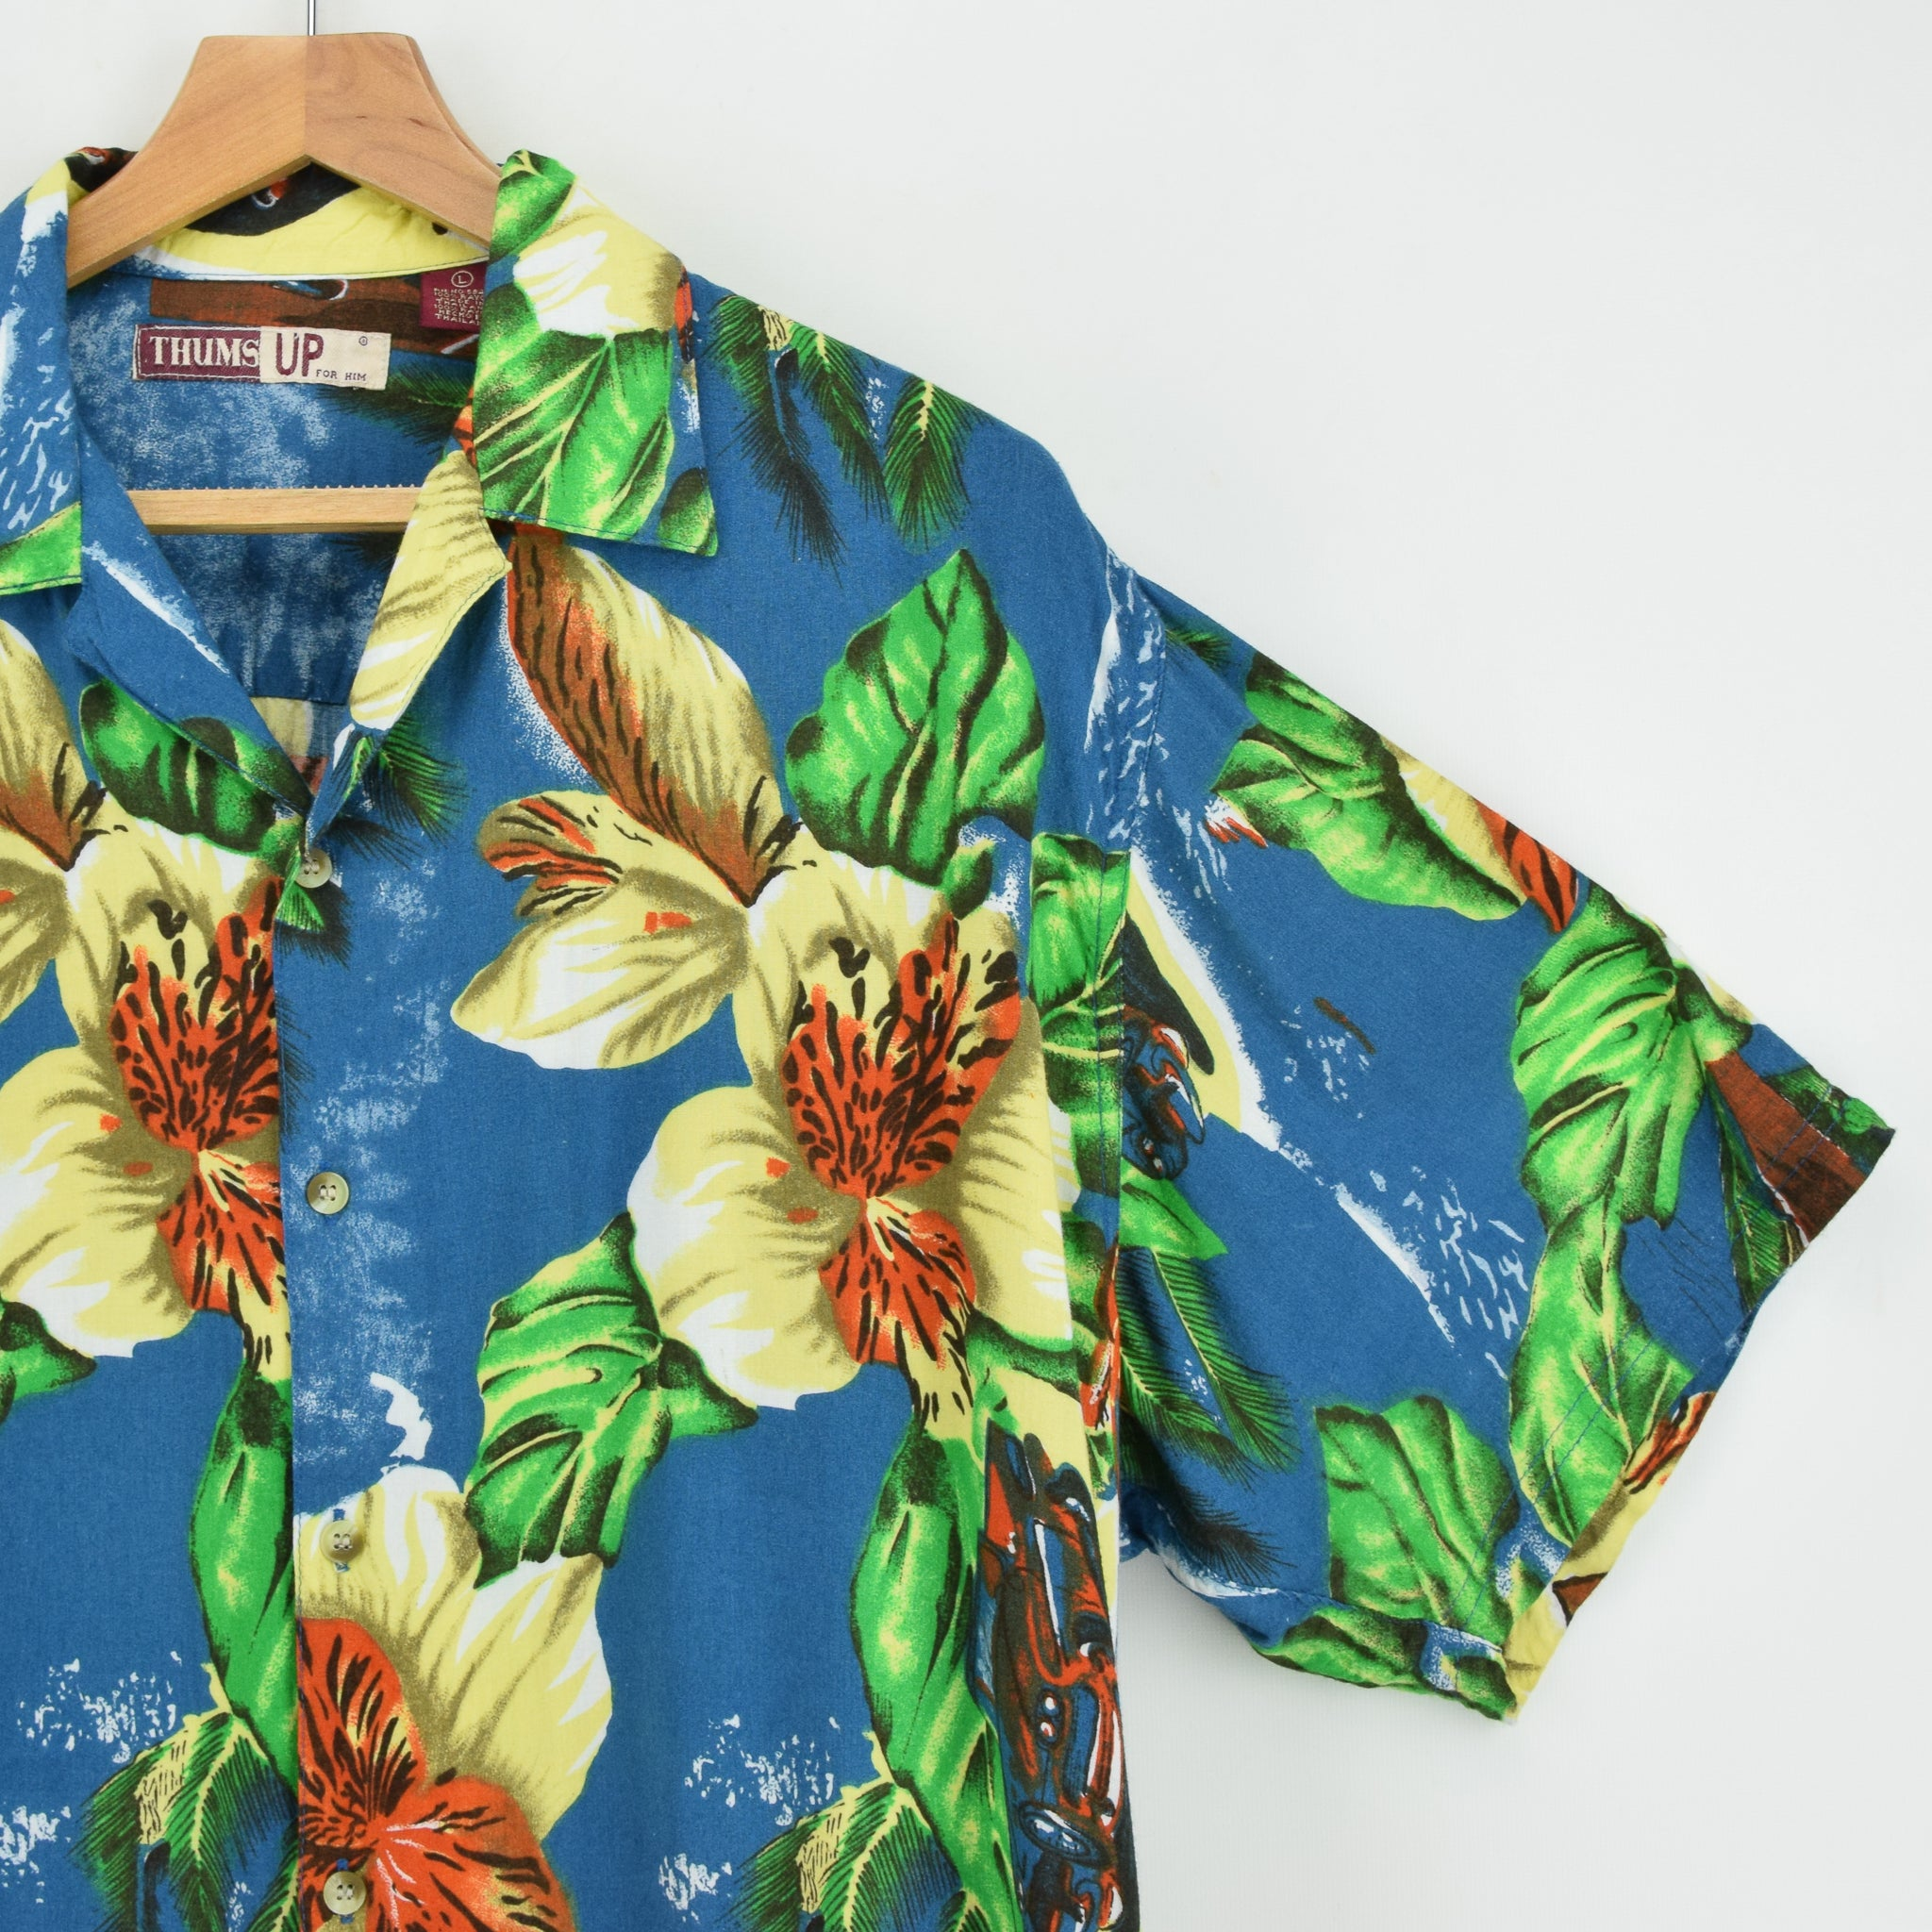 Vintage Thums Up Hawaiian Beach Aloha Holiday Shirt Short Sleeve L chest